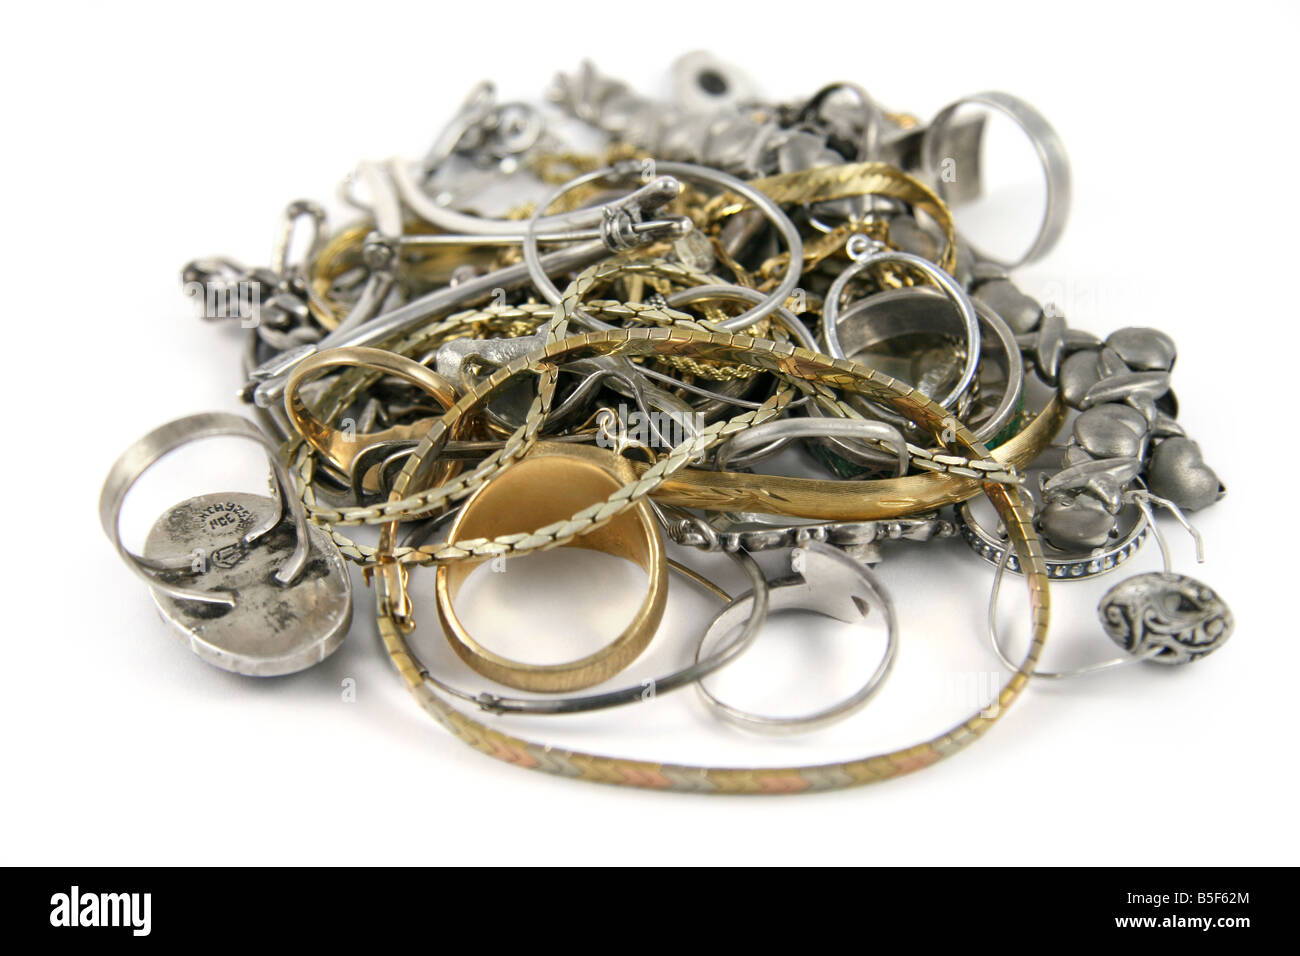 Scrap gold and silver jewelry. - Stock Image